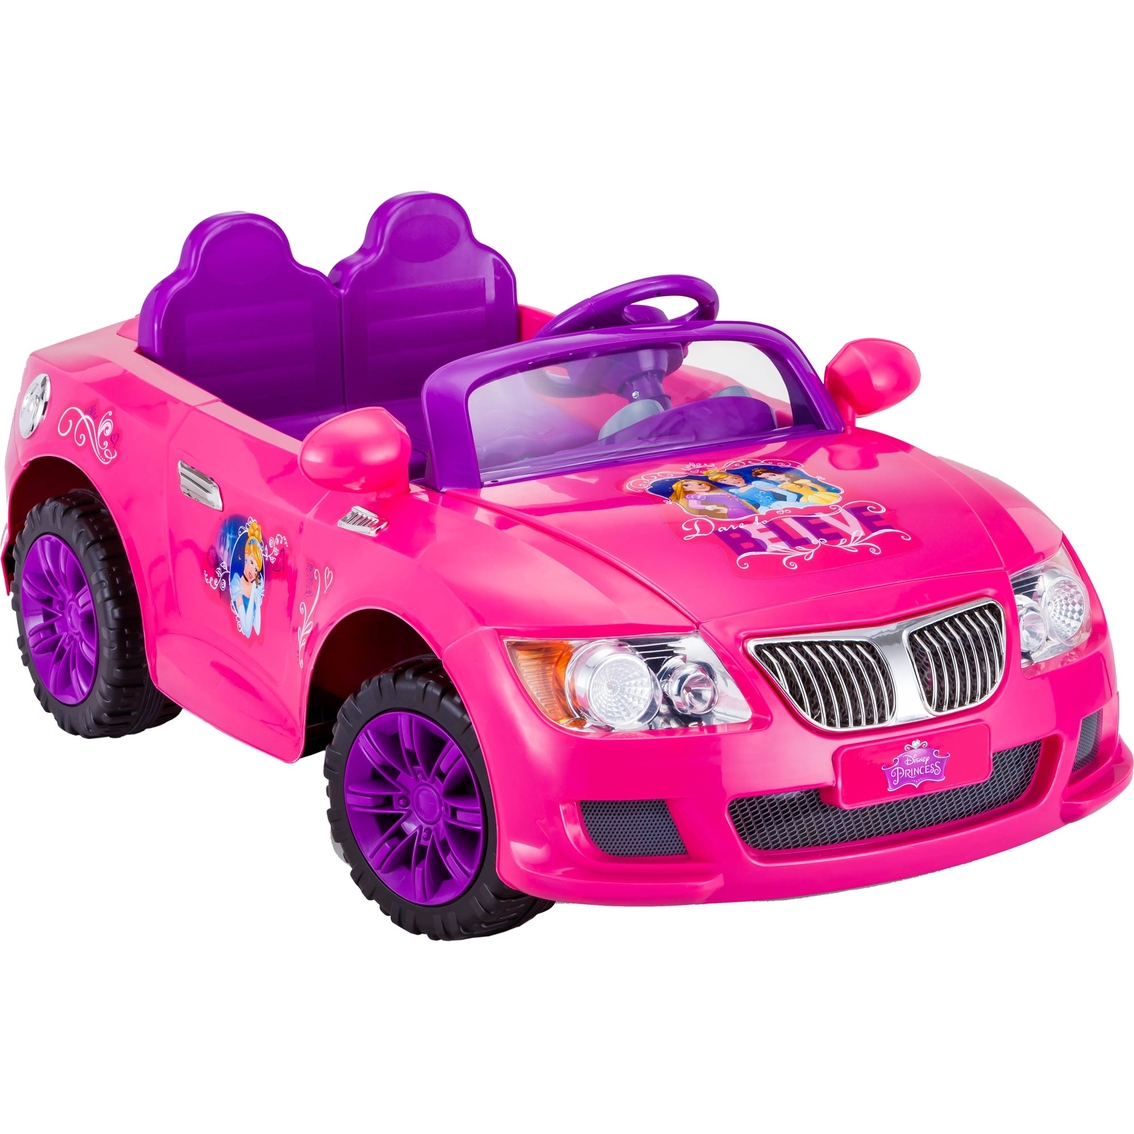 Kidtrax Disney Princess Cool Car 12v Electric Ride On | Battery ...